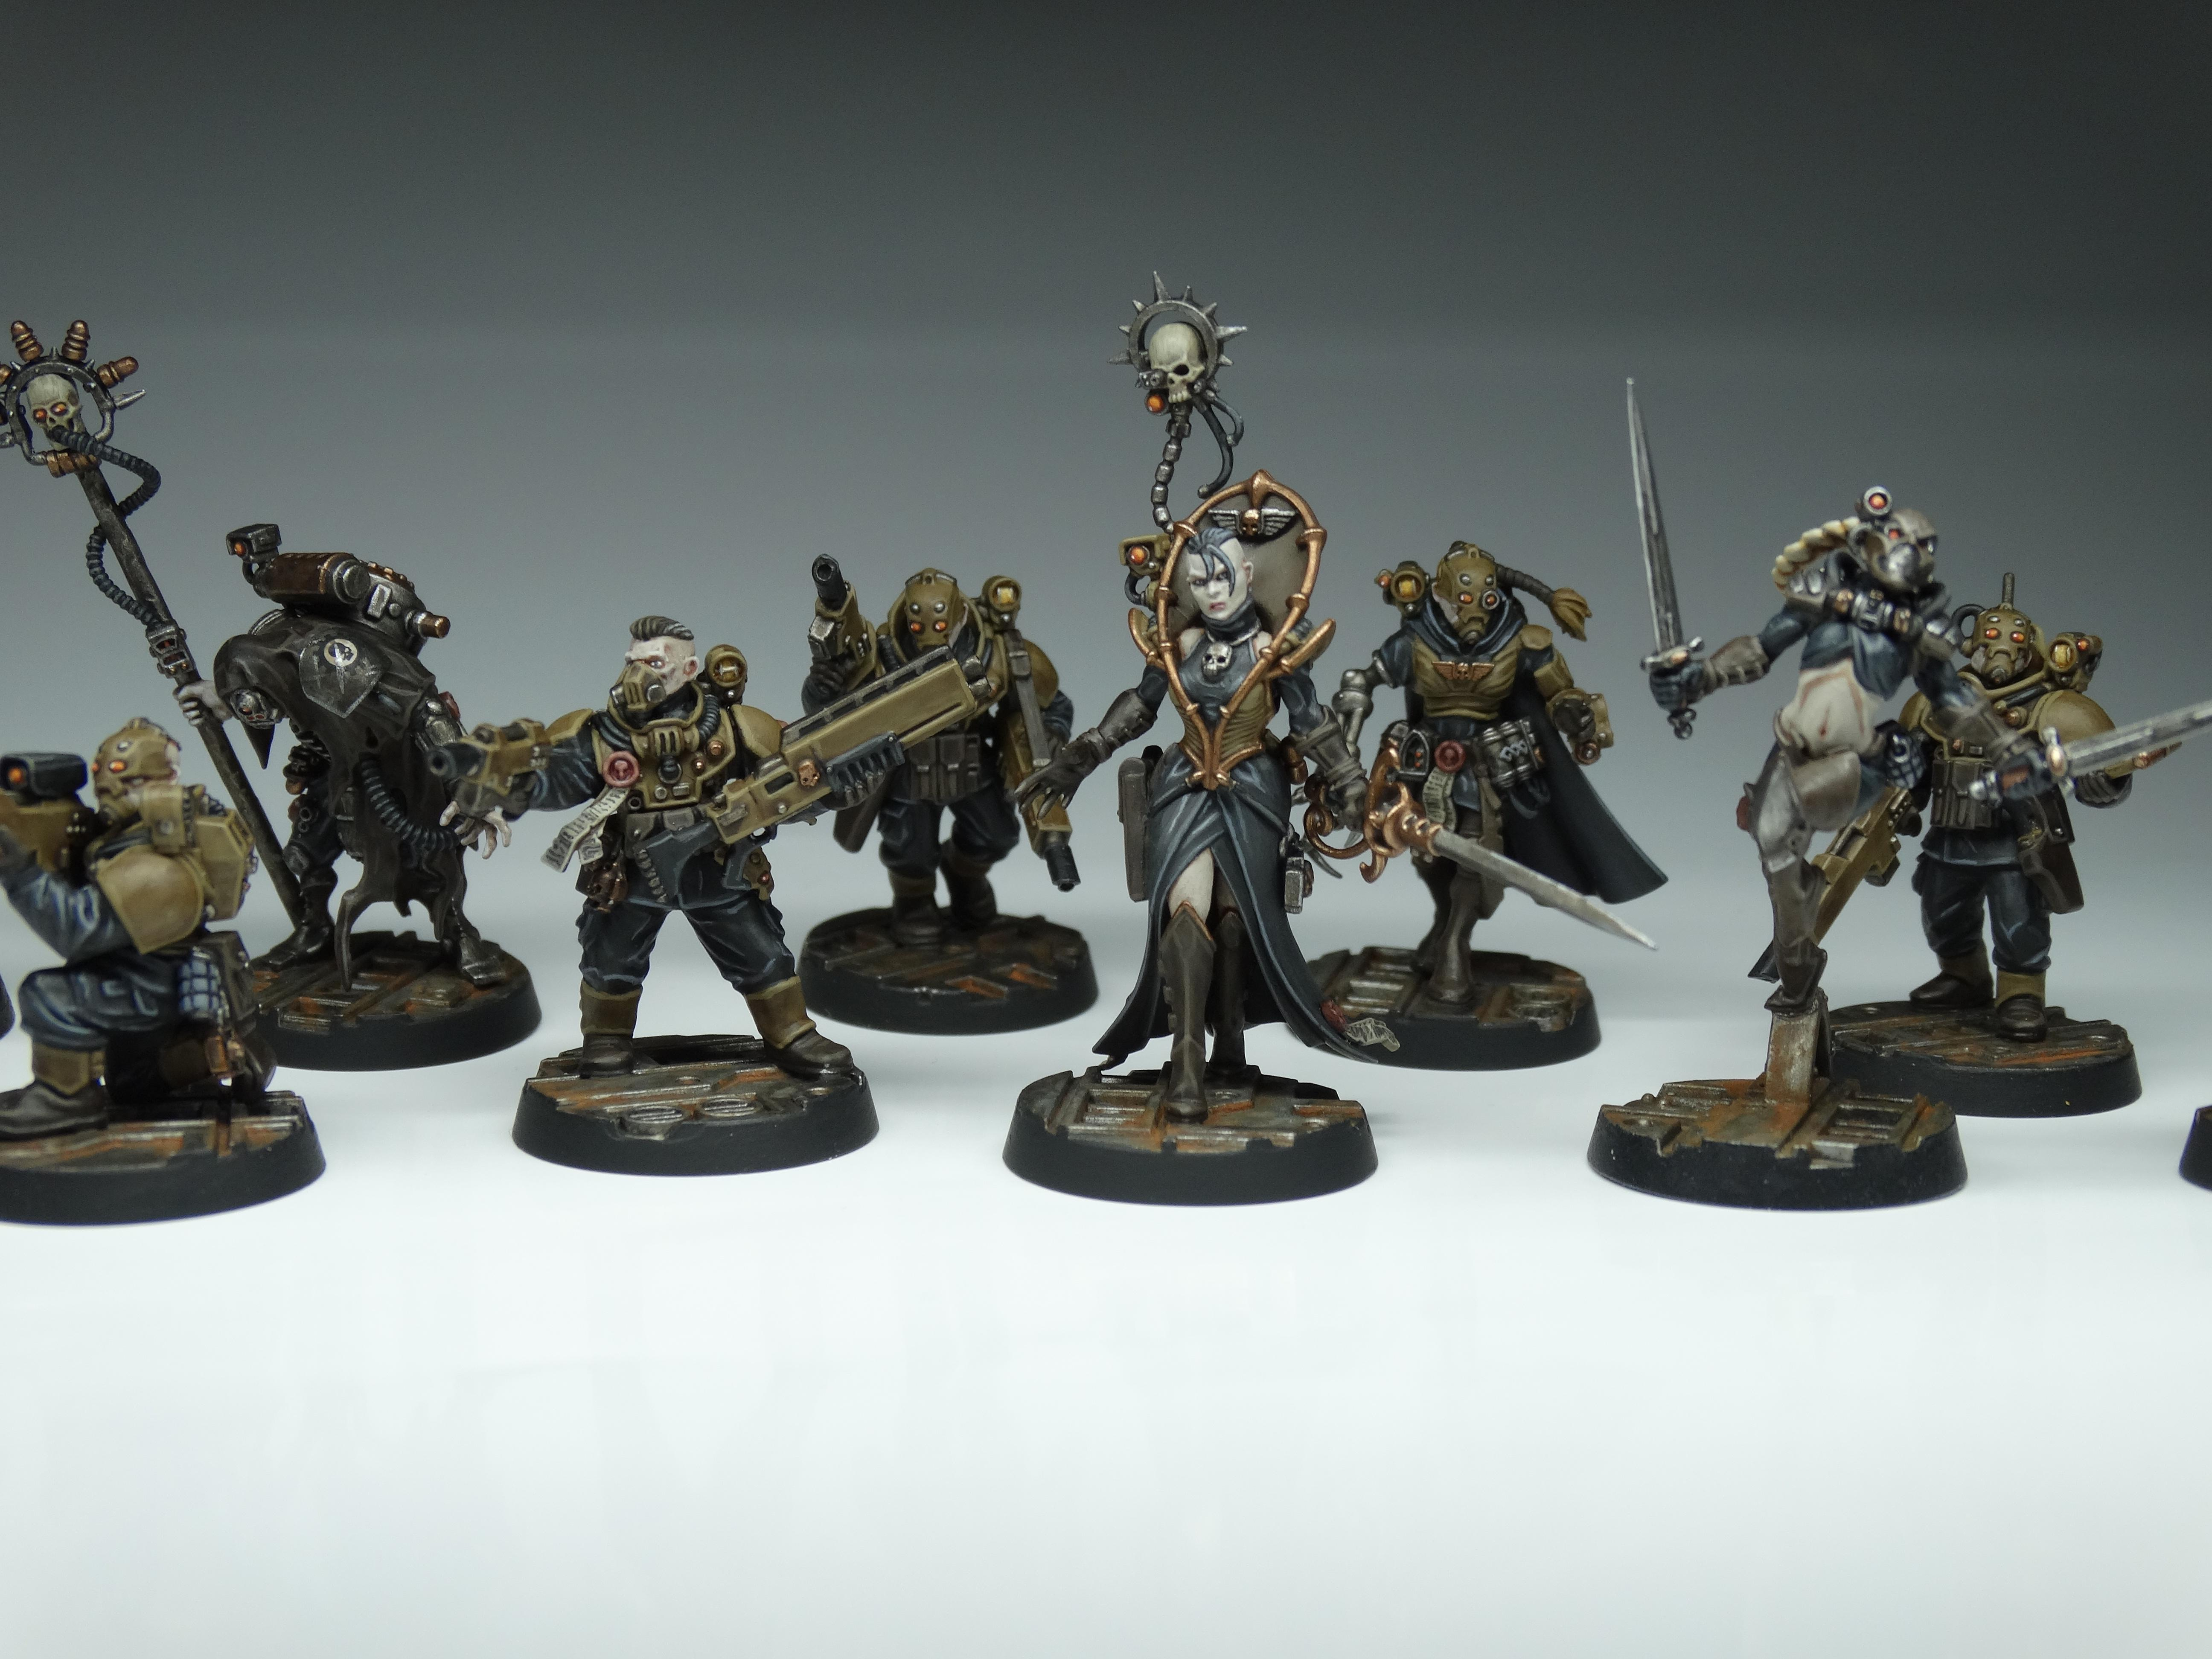 Conversion, Elucidian Starstriders, Imperial Guard, Imperial Navy, Inq28, Kitbash, Rogue Trader, Voidsmen, Warhammer 40,000